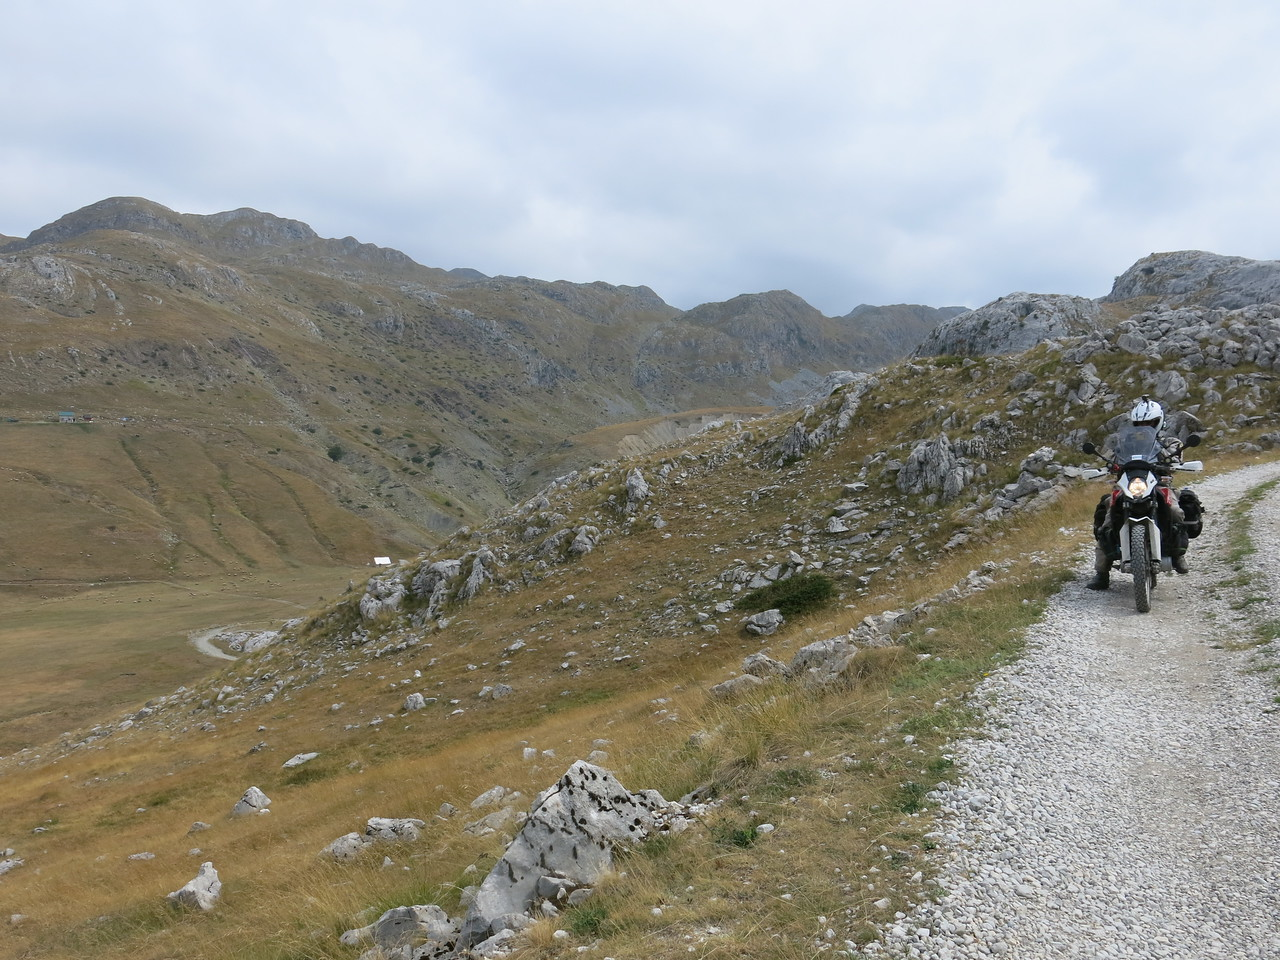 Coming down from Kapetanovo lake on the Morača plateau